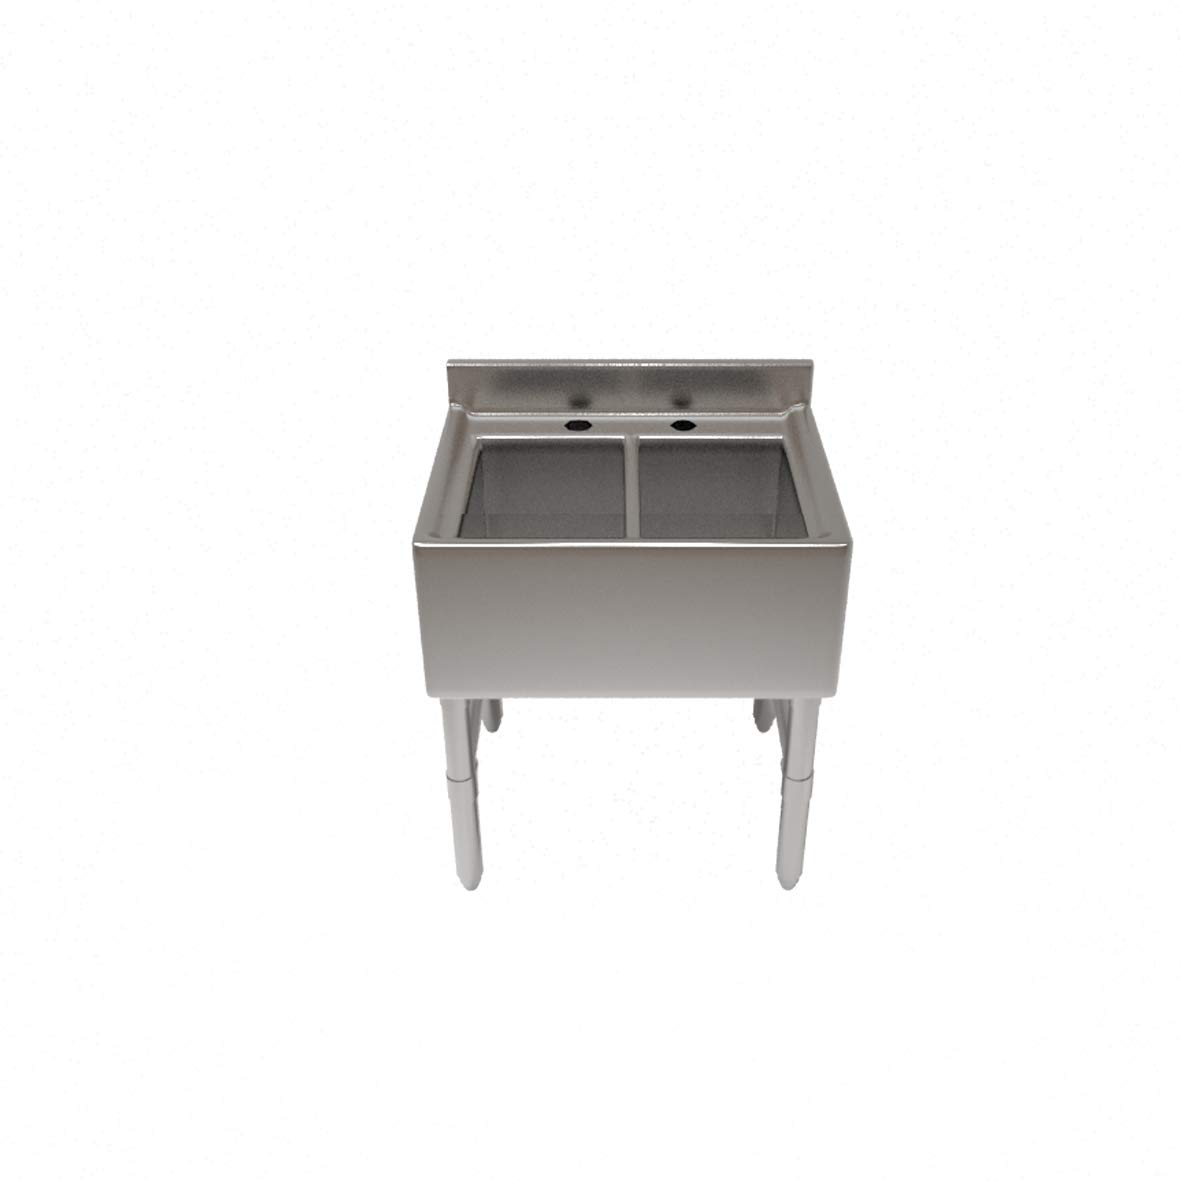 "Premium Underbar Sink, Two Compartment, 24""L x 21-1/4'W x 32-1/2'H, 18/300 Stainless Steel Construction, 10' Wide x 14' Front-to-Back x 10' deep compartments"